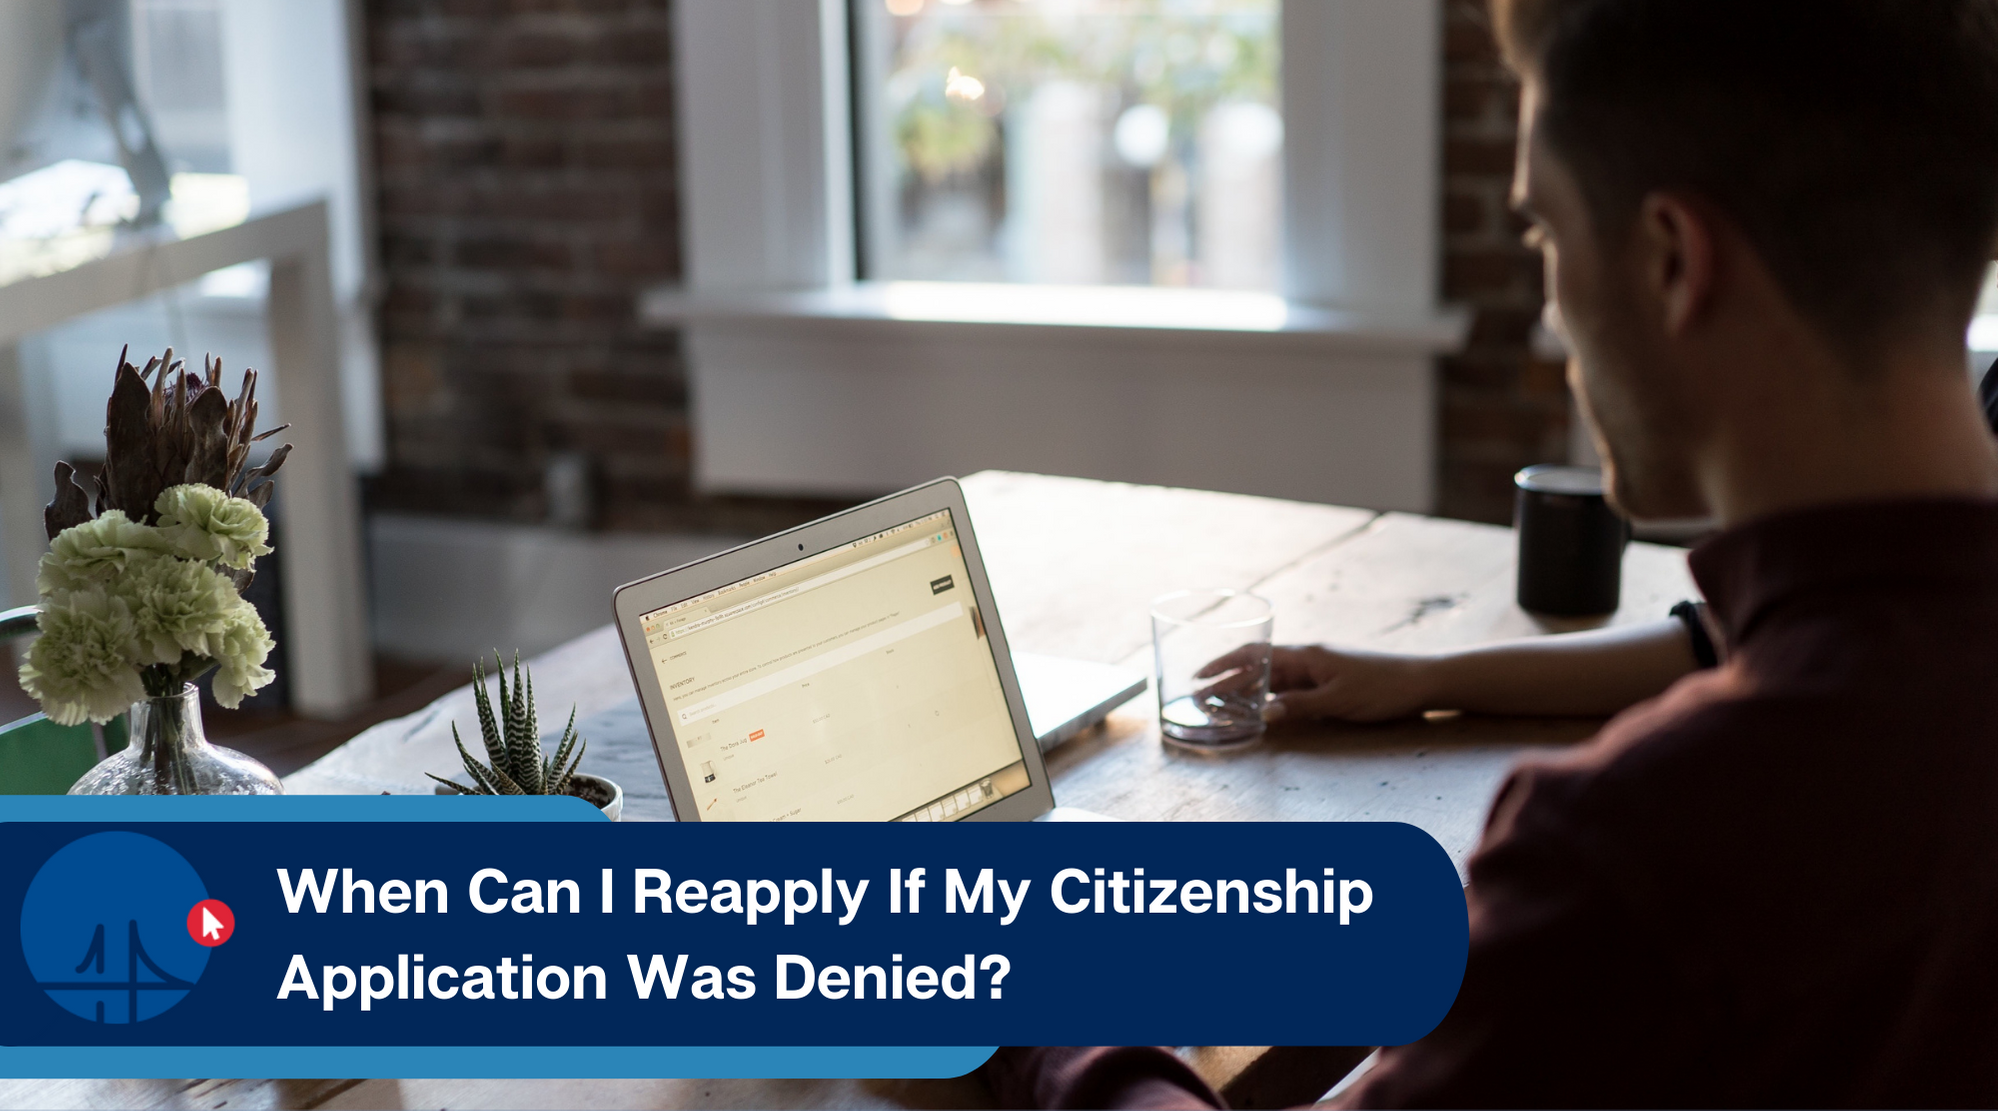 When Can I Reapply If My Citizenship Application Was Denied?